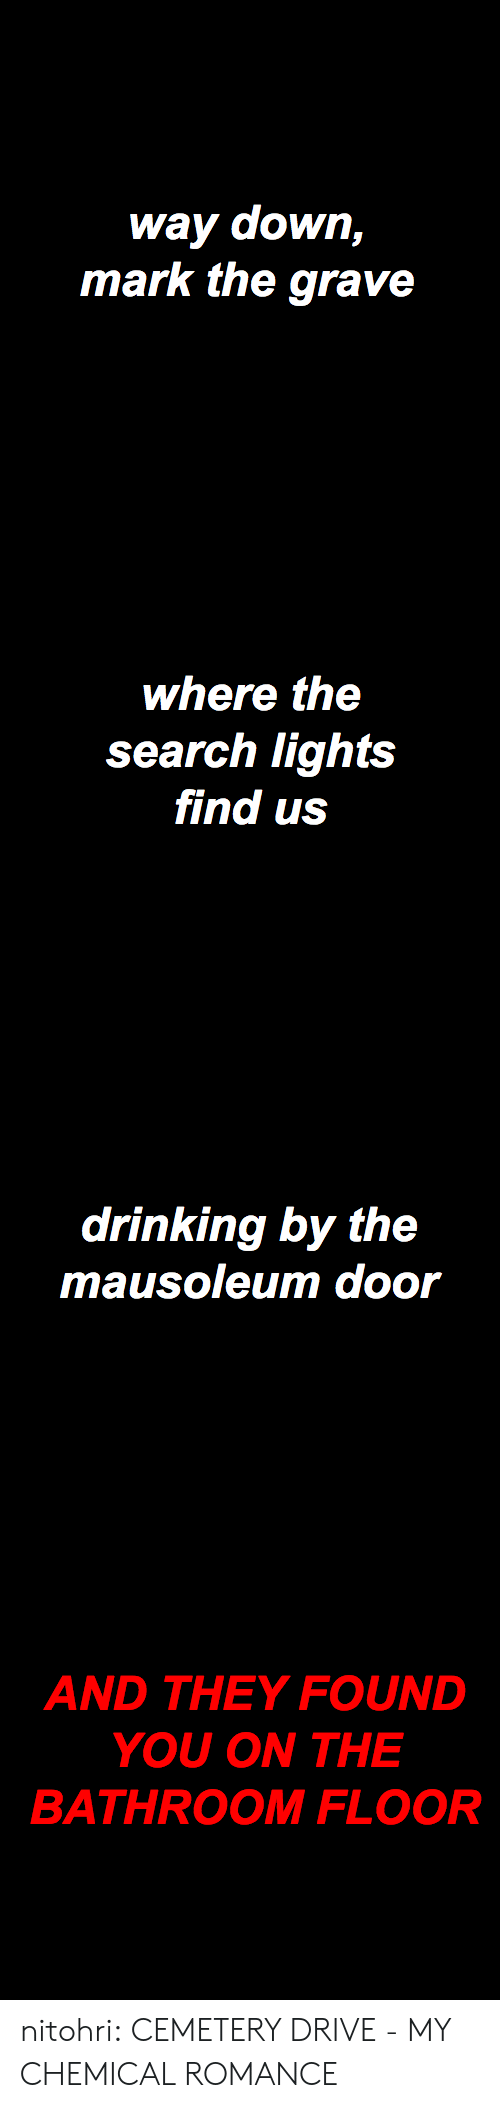 Drinking, Tumblr, and Blog: way down,  mark the grave   where the  search lights  find us   drinking by the  mausoleum door   AND THEY FOUND  YOU ON THE  BATHROOM FLOOR nitohri:  CEMETERY DRIVE - MY CHEMICAL ROMANCE